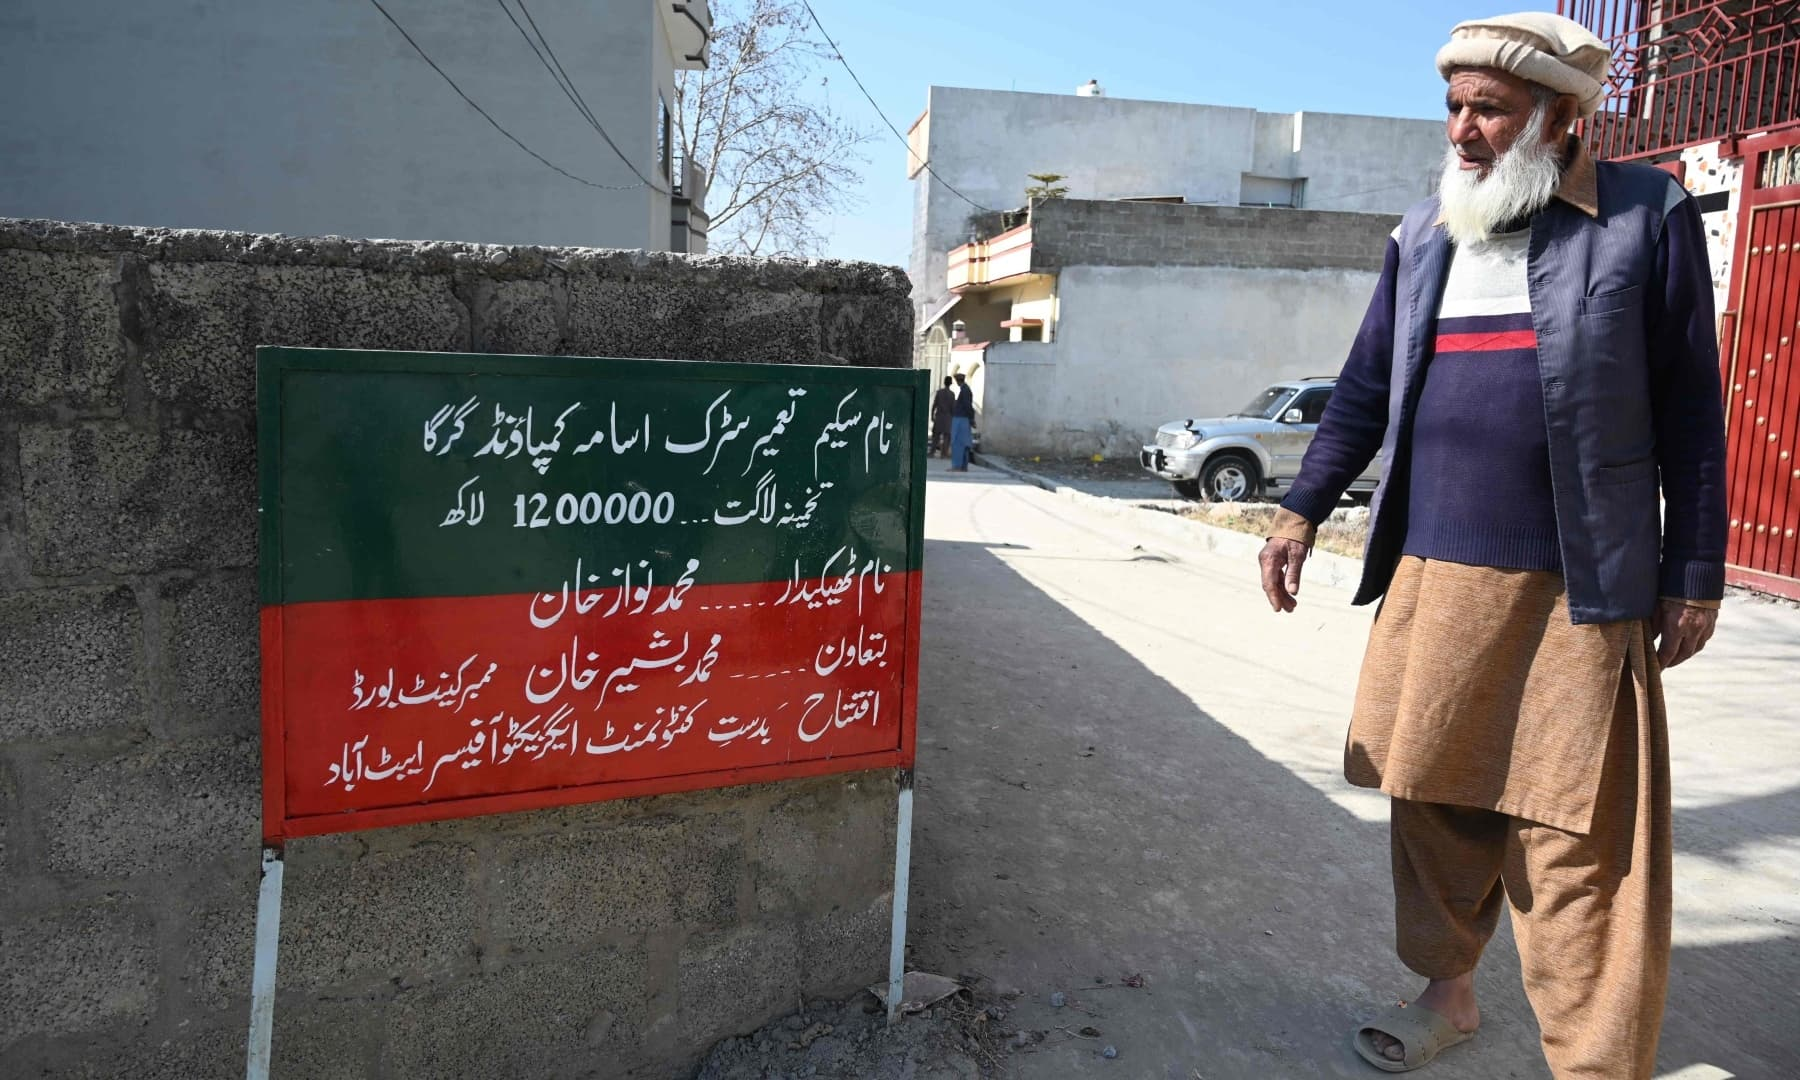 Local resident Altaf Hussain and neighbour of Osama bin Laden stands next to a signboard at the site of the demolished compound of Bin Laden in northern Abbottabad, in this picture taken on February 11, 2021. — AFP